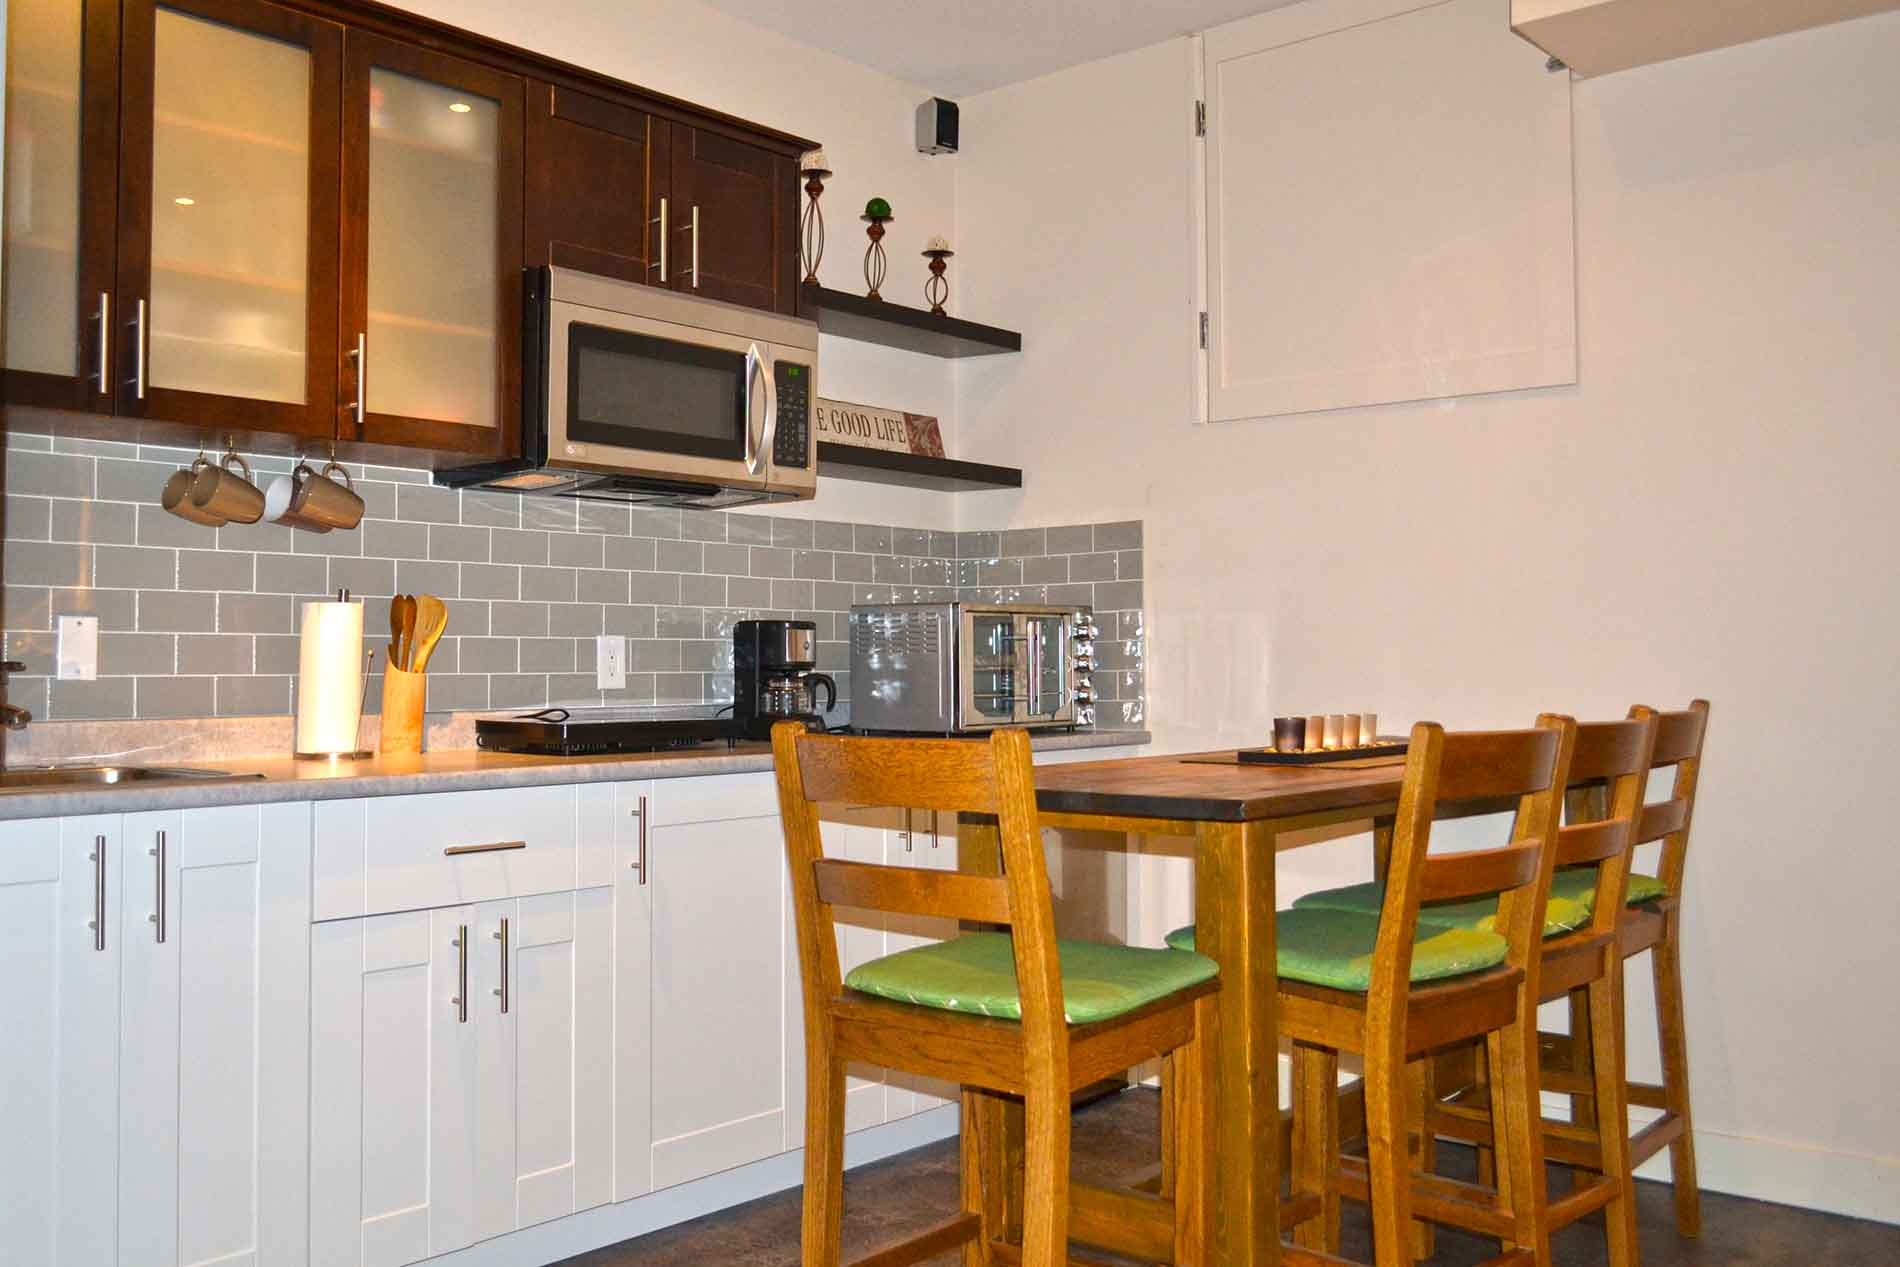 Kitchen Peachland Bed Breakfast Accommodation With Pool